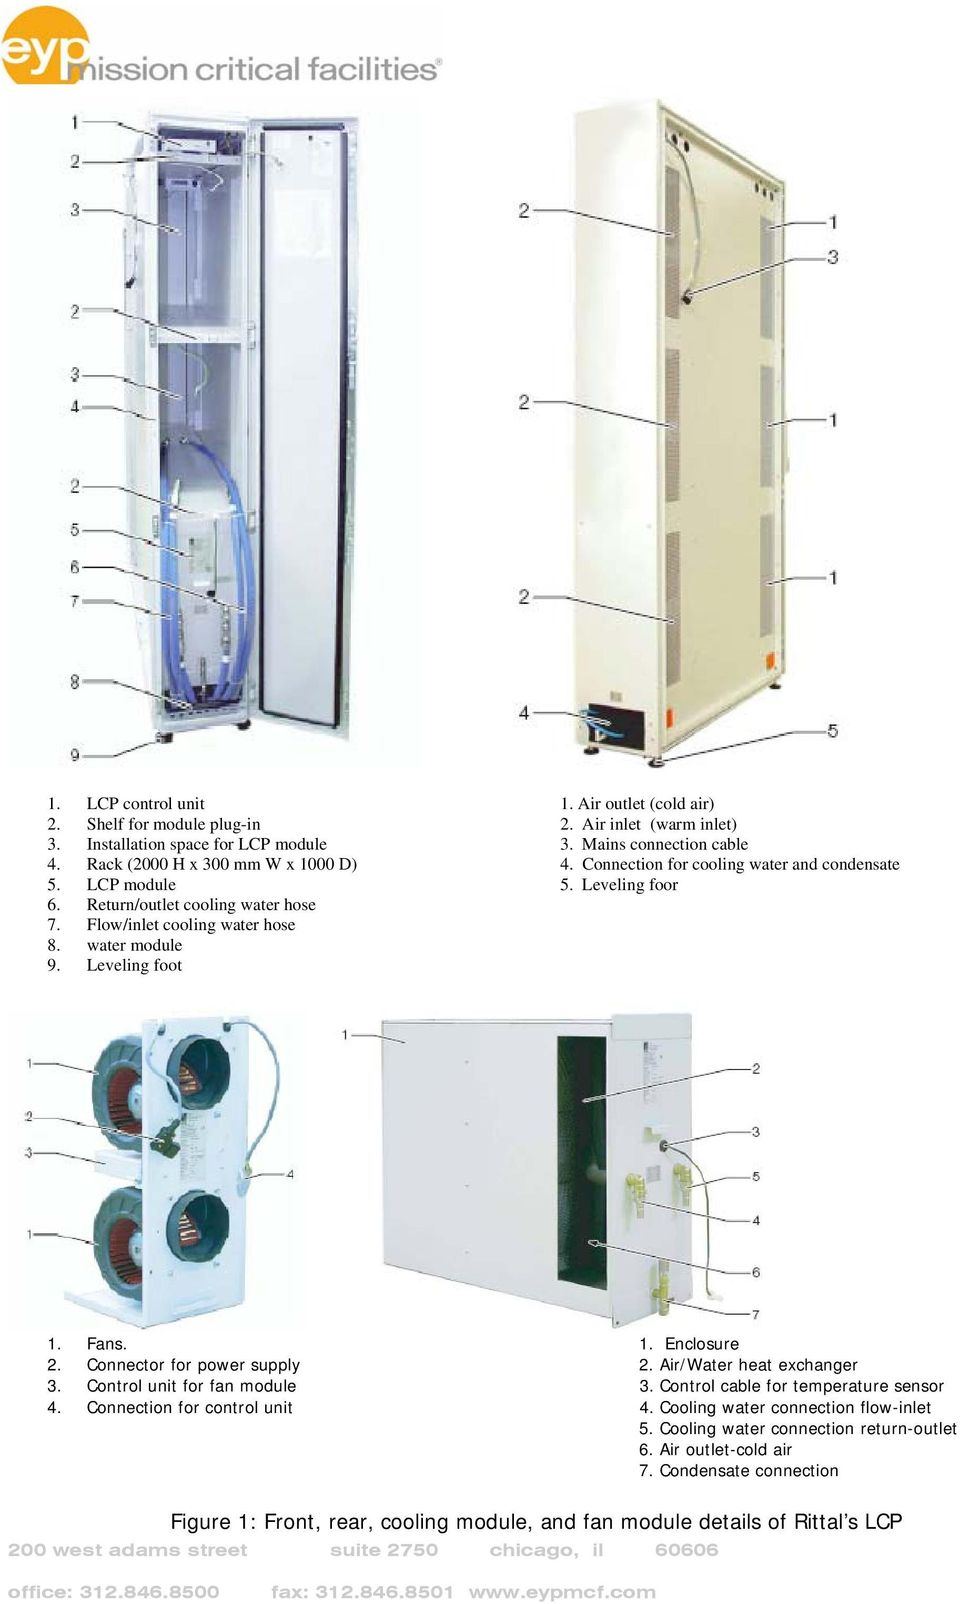 water module 9. Leveling foot 1. Fans. 1. Enclosure 2. Connector for power supply 2. Air/Water heat exchanger 3. Control unit for fan module 3. Control cable for temperature sensor 4.